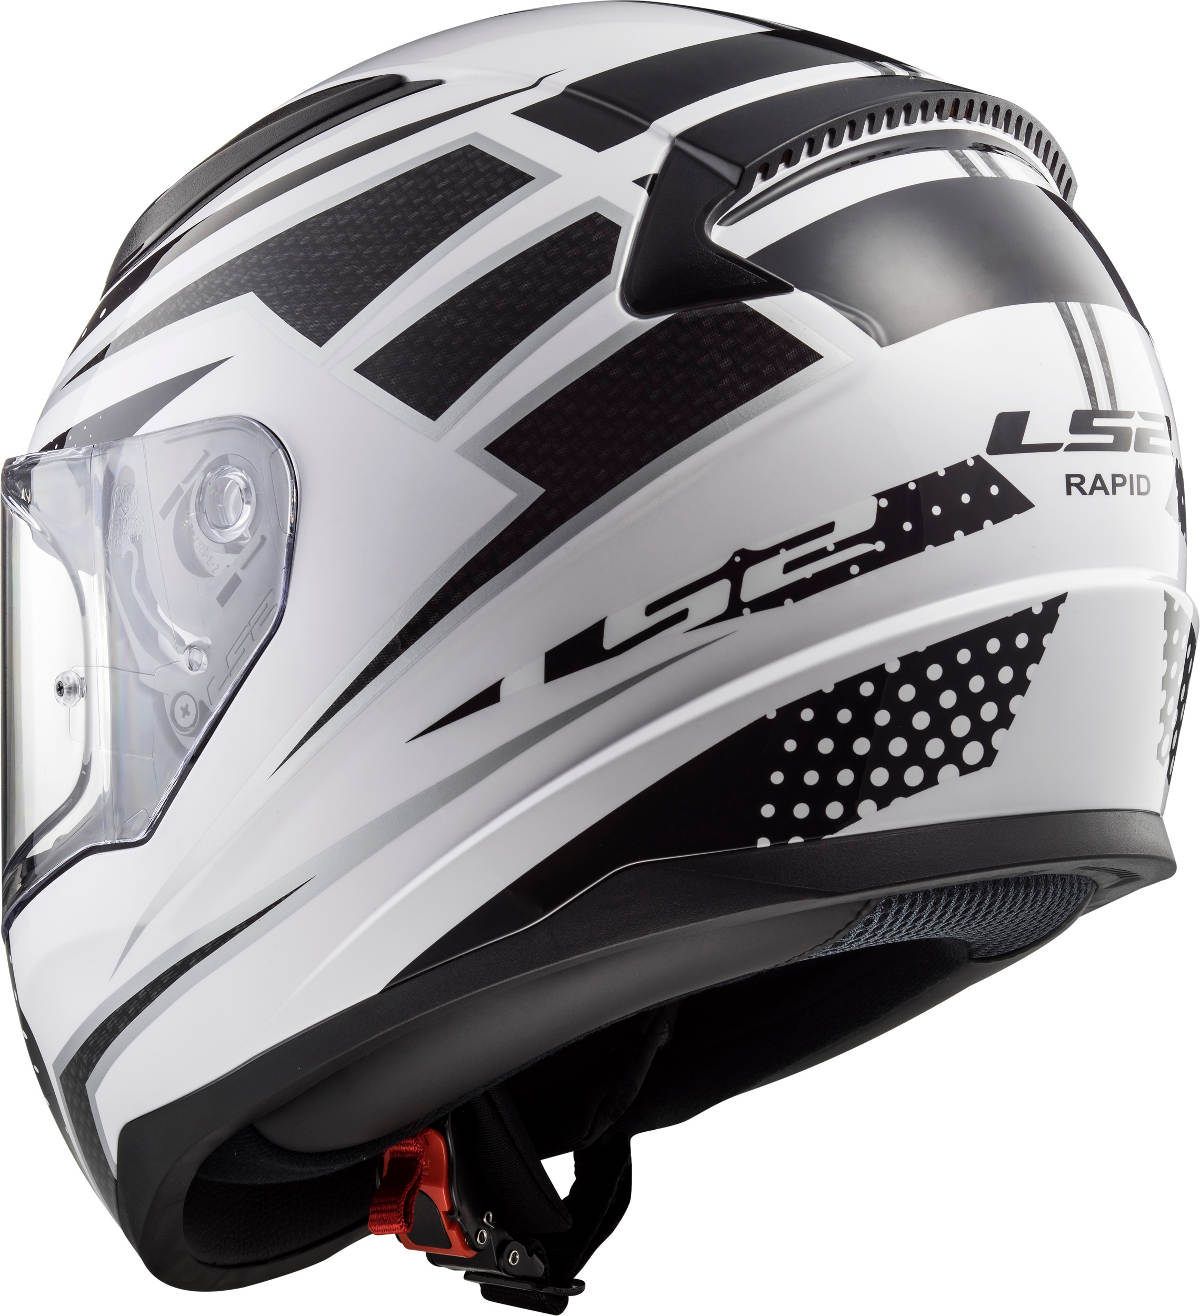 LS2 Rapid Motorcycle Helmet Black White Rear 3Q